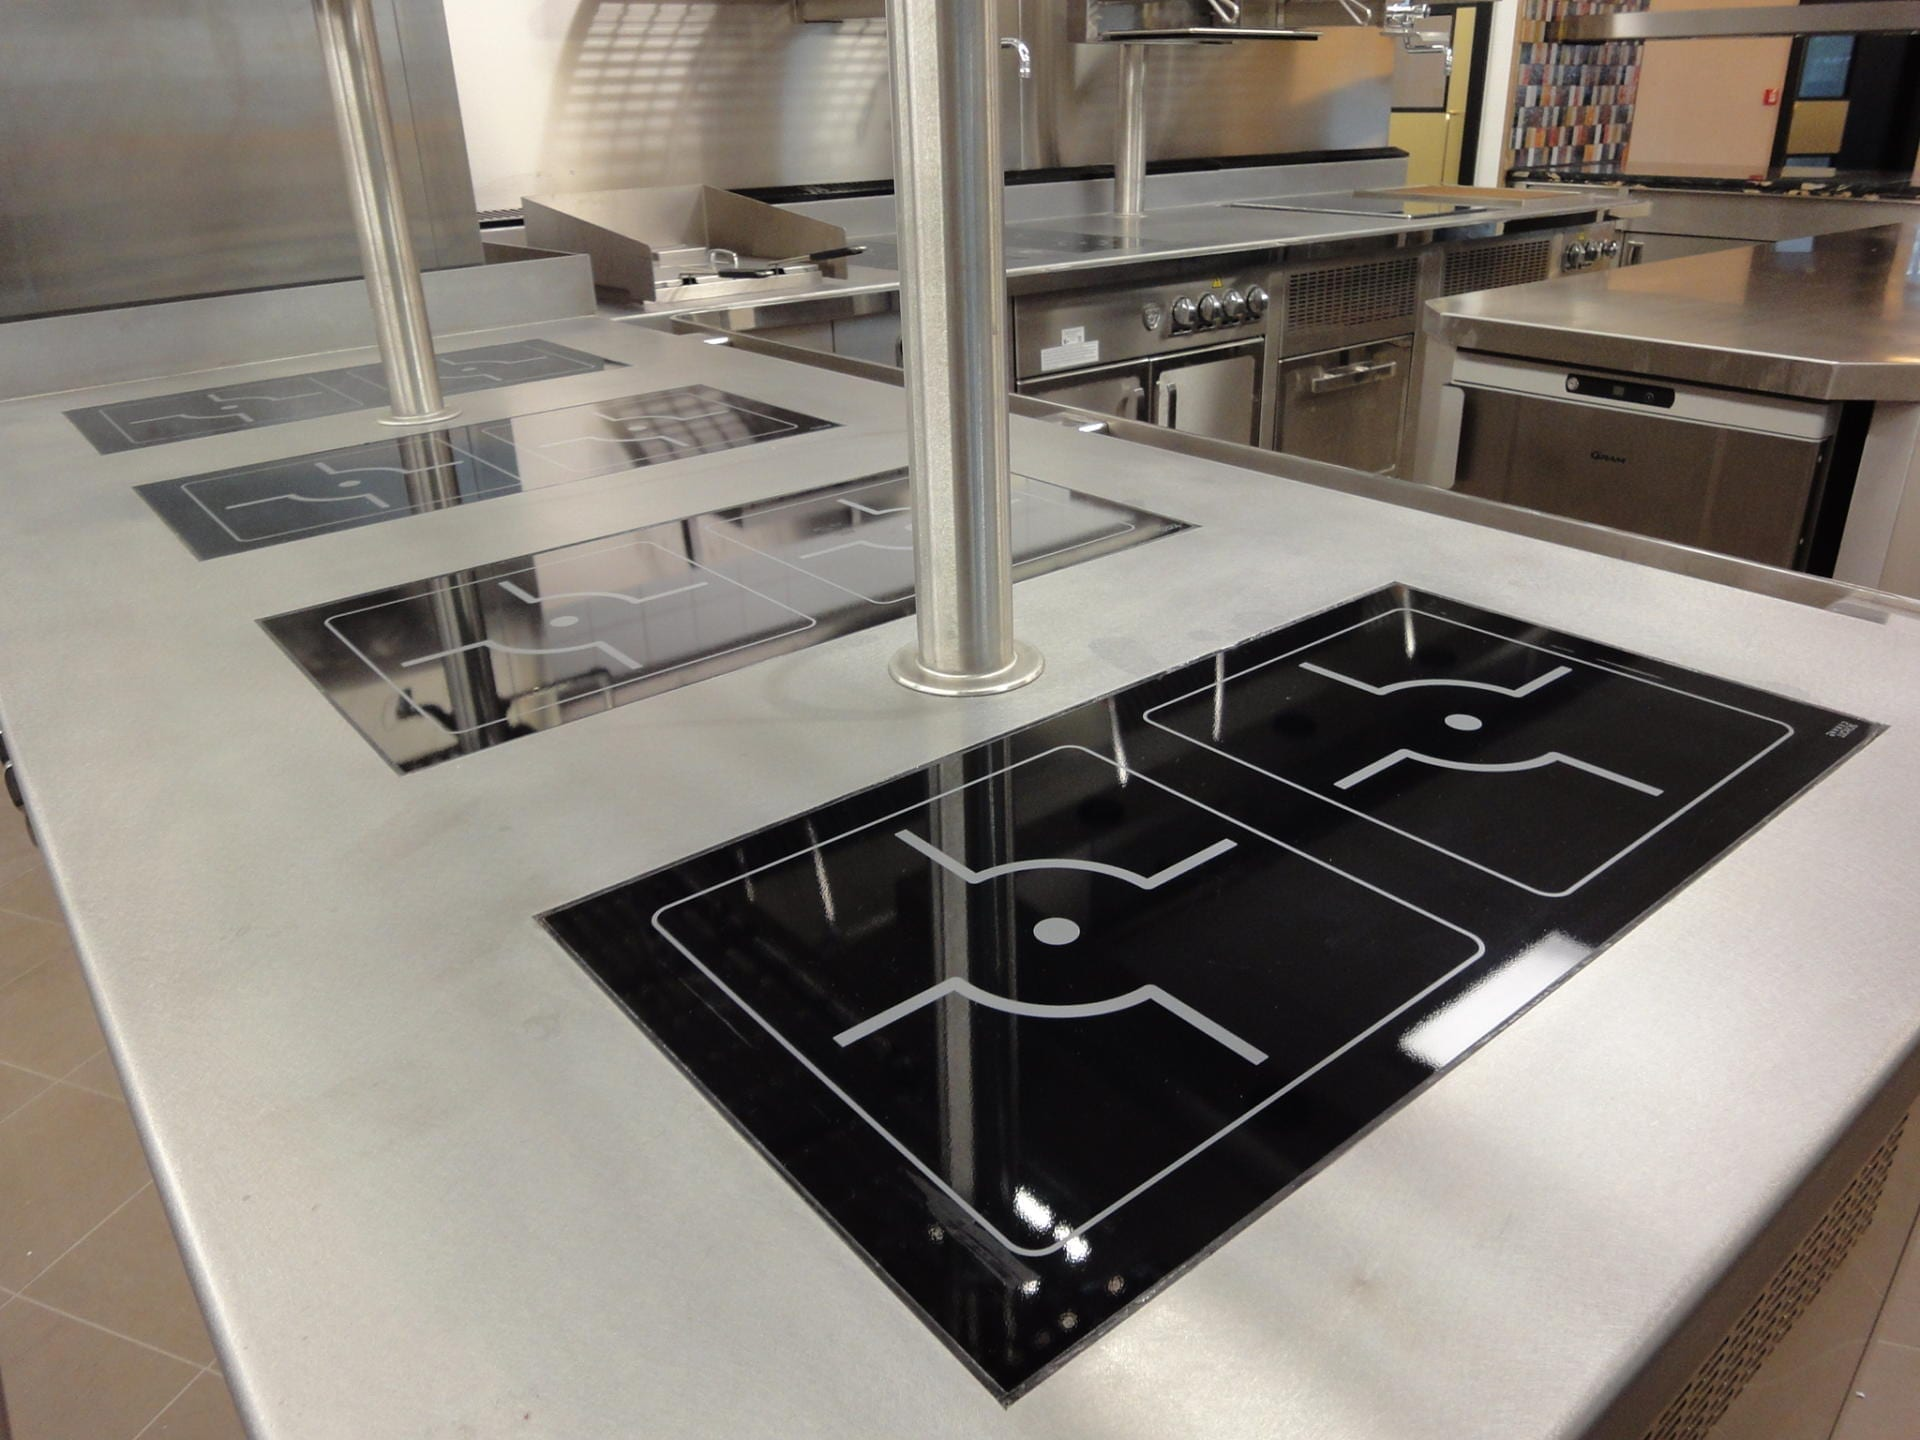 Hotel-Verta-Von-Essen-Battersea-Kitchen-Fabrication-Stainless-Steel-Commercial-spacecatering_5